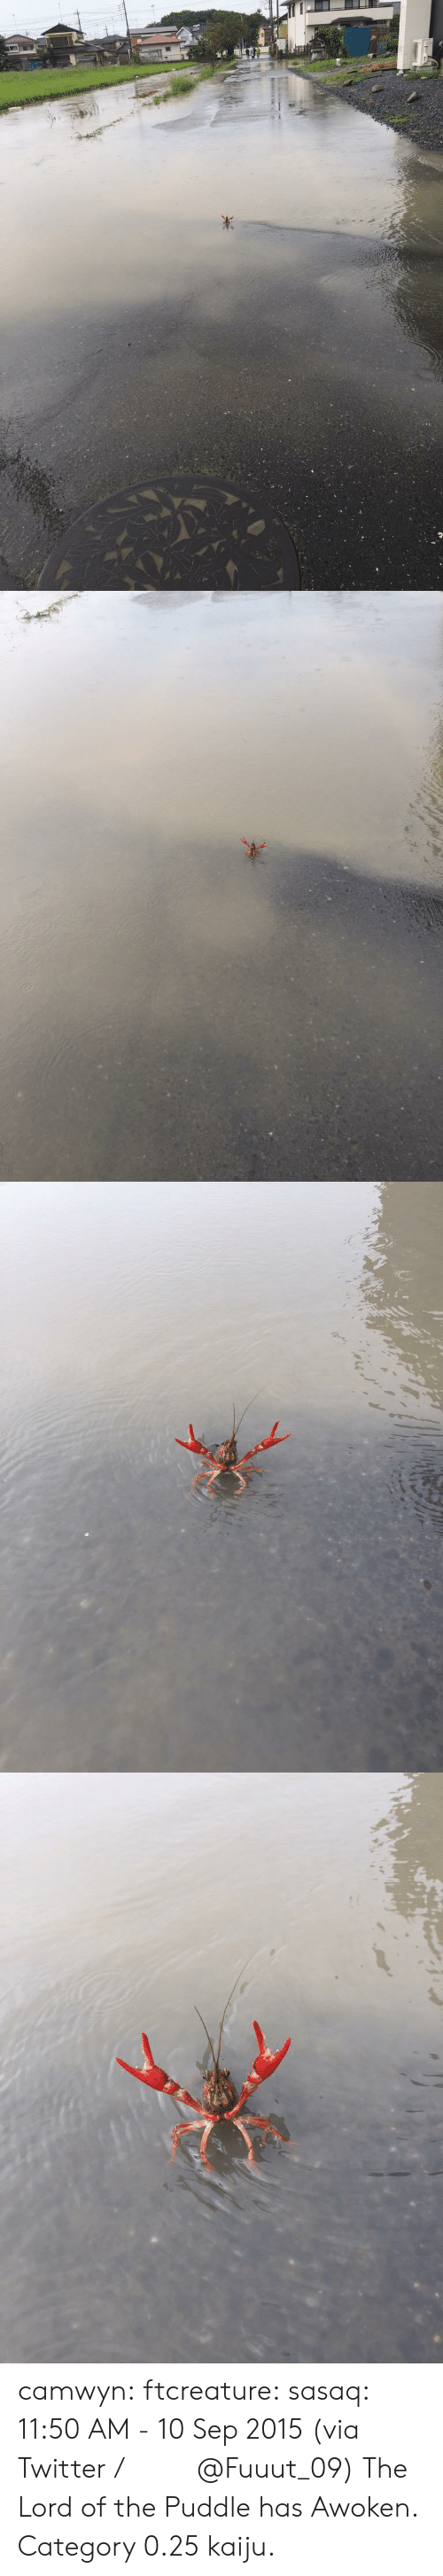 Target, Tumblr, and Twitter: camwyn:  ftcreature:  sasaq:  11:50 AM - 10 Sep 2015 (via Twitter / ふ み な @Fuuut_09)   The Lord of the Puddle has Awoken.  Category 0.25 kaiju.